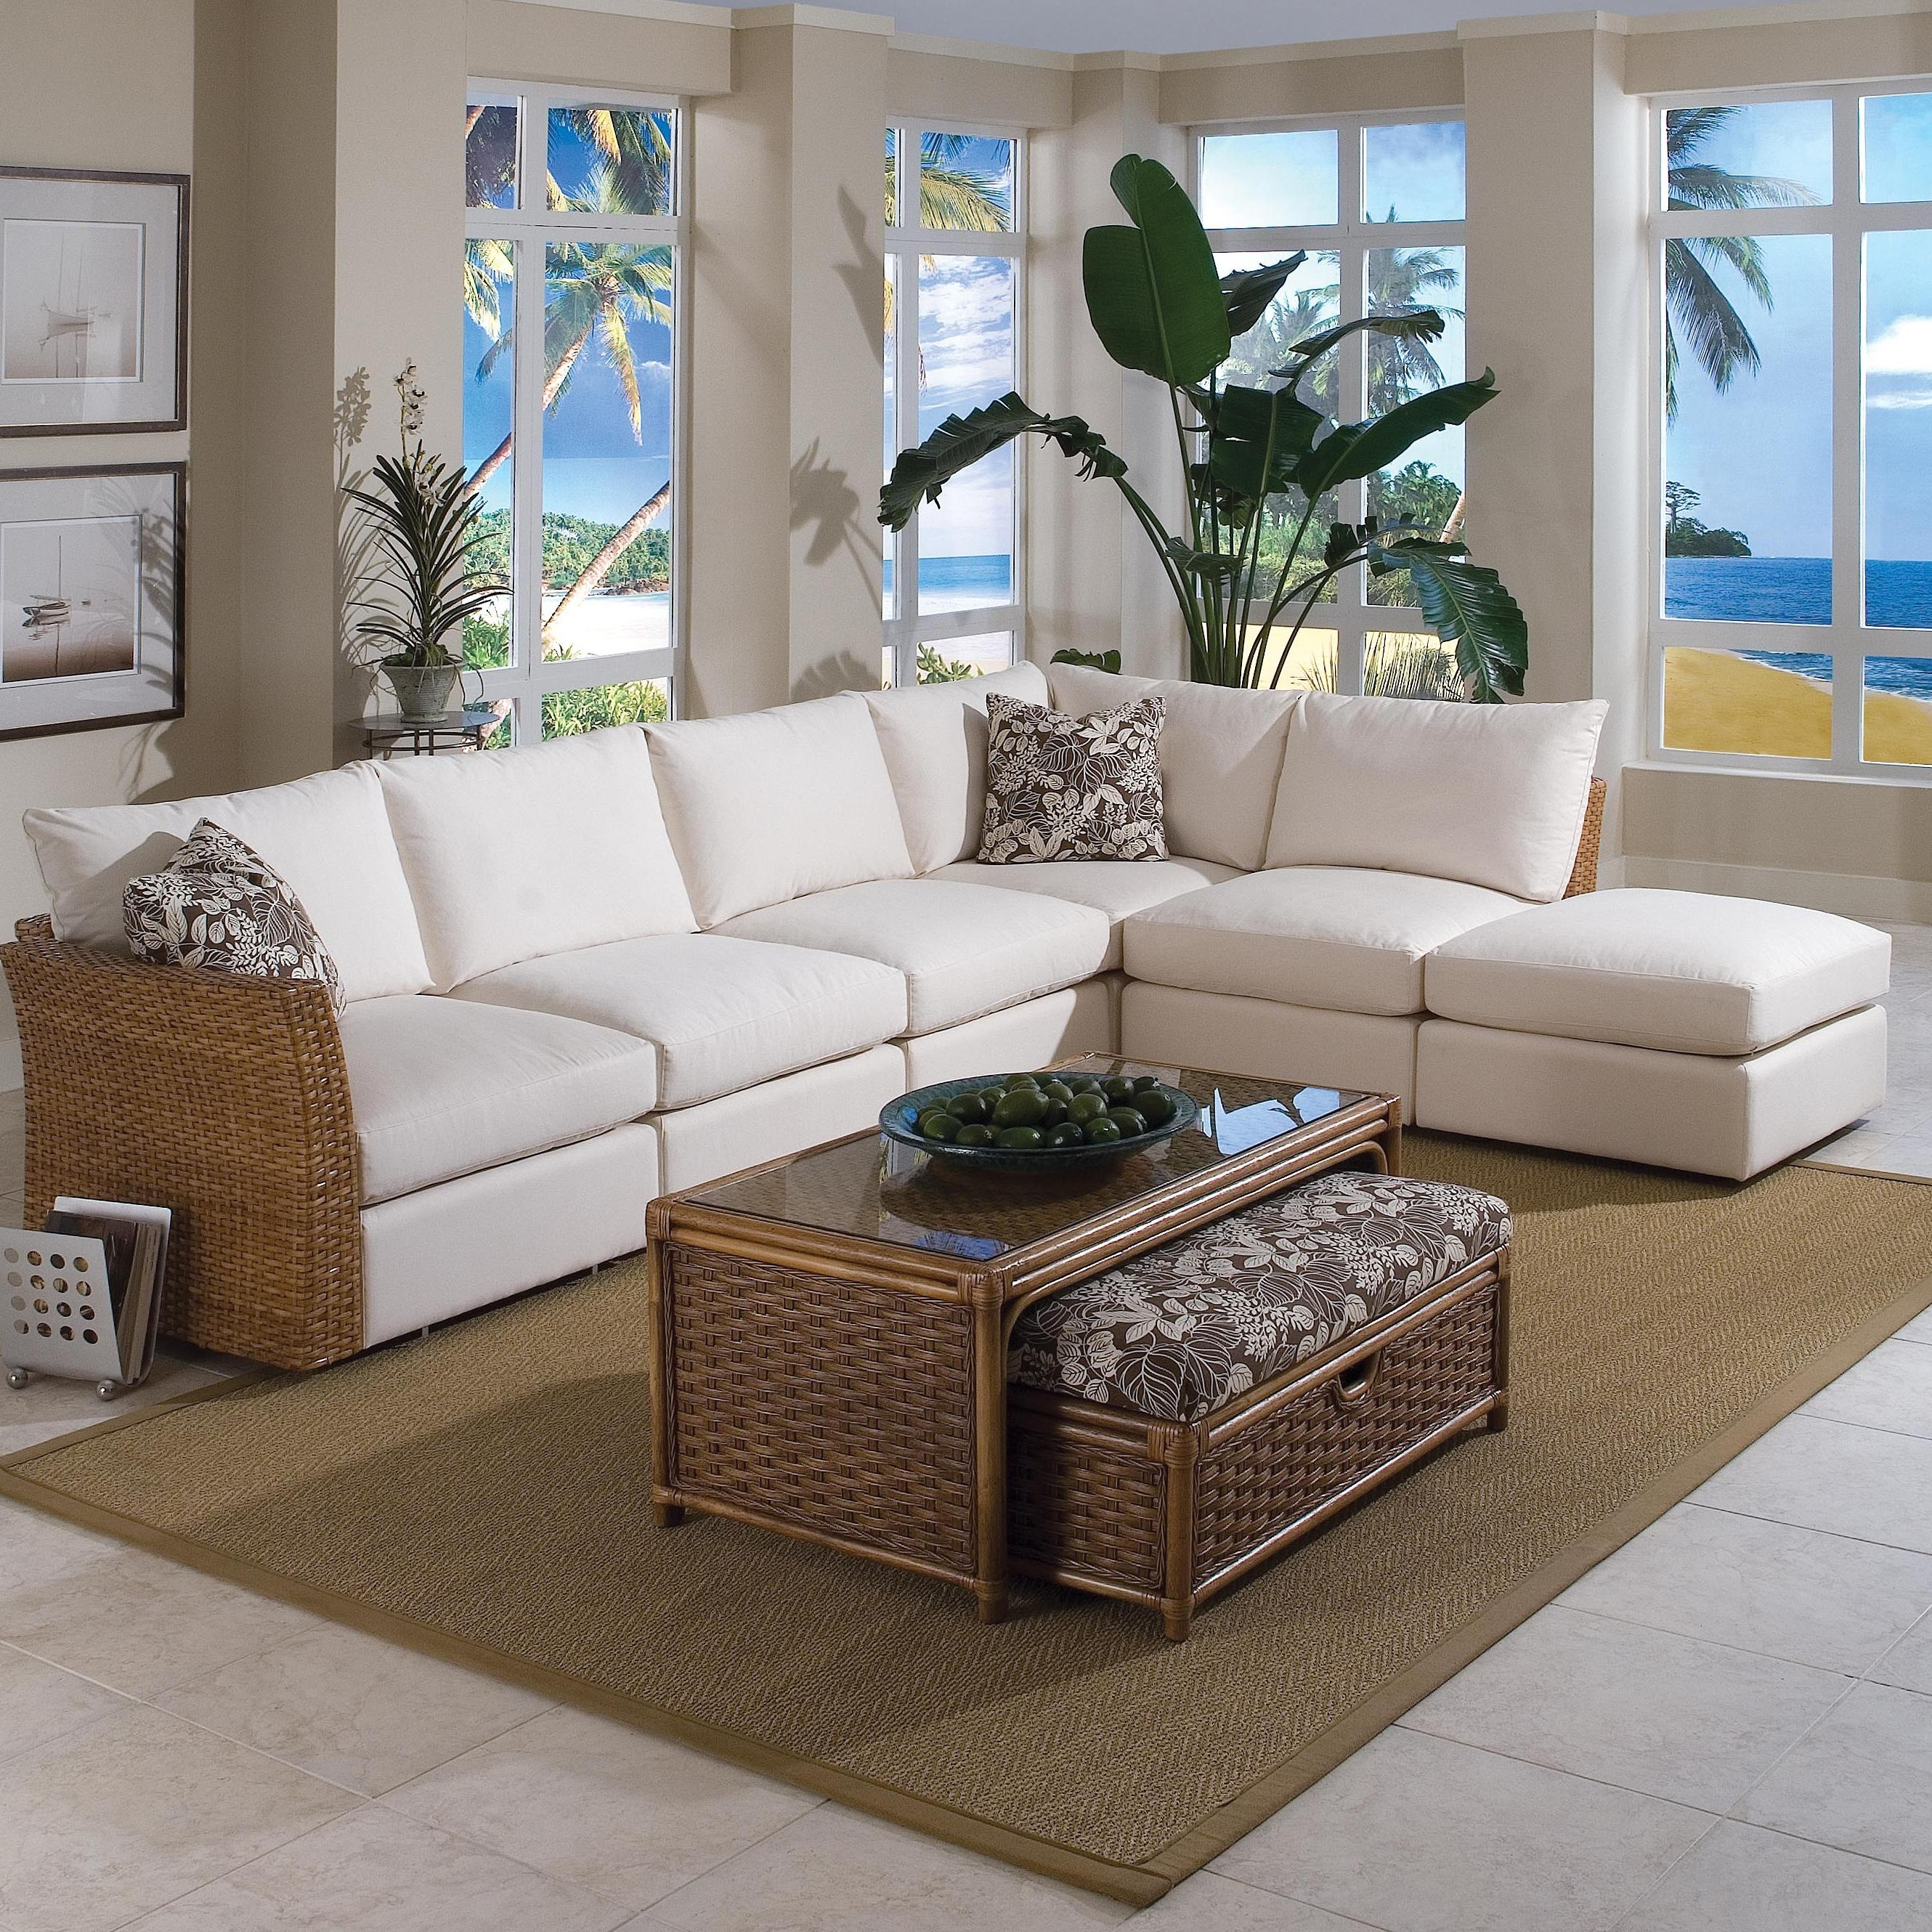 Braxton Culler Grand Water Point Tropical Sectional Sofa With Two Within Most Recently Released Grand Furniture Sectional Sofas (View 7 of 15)